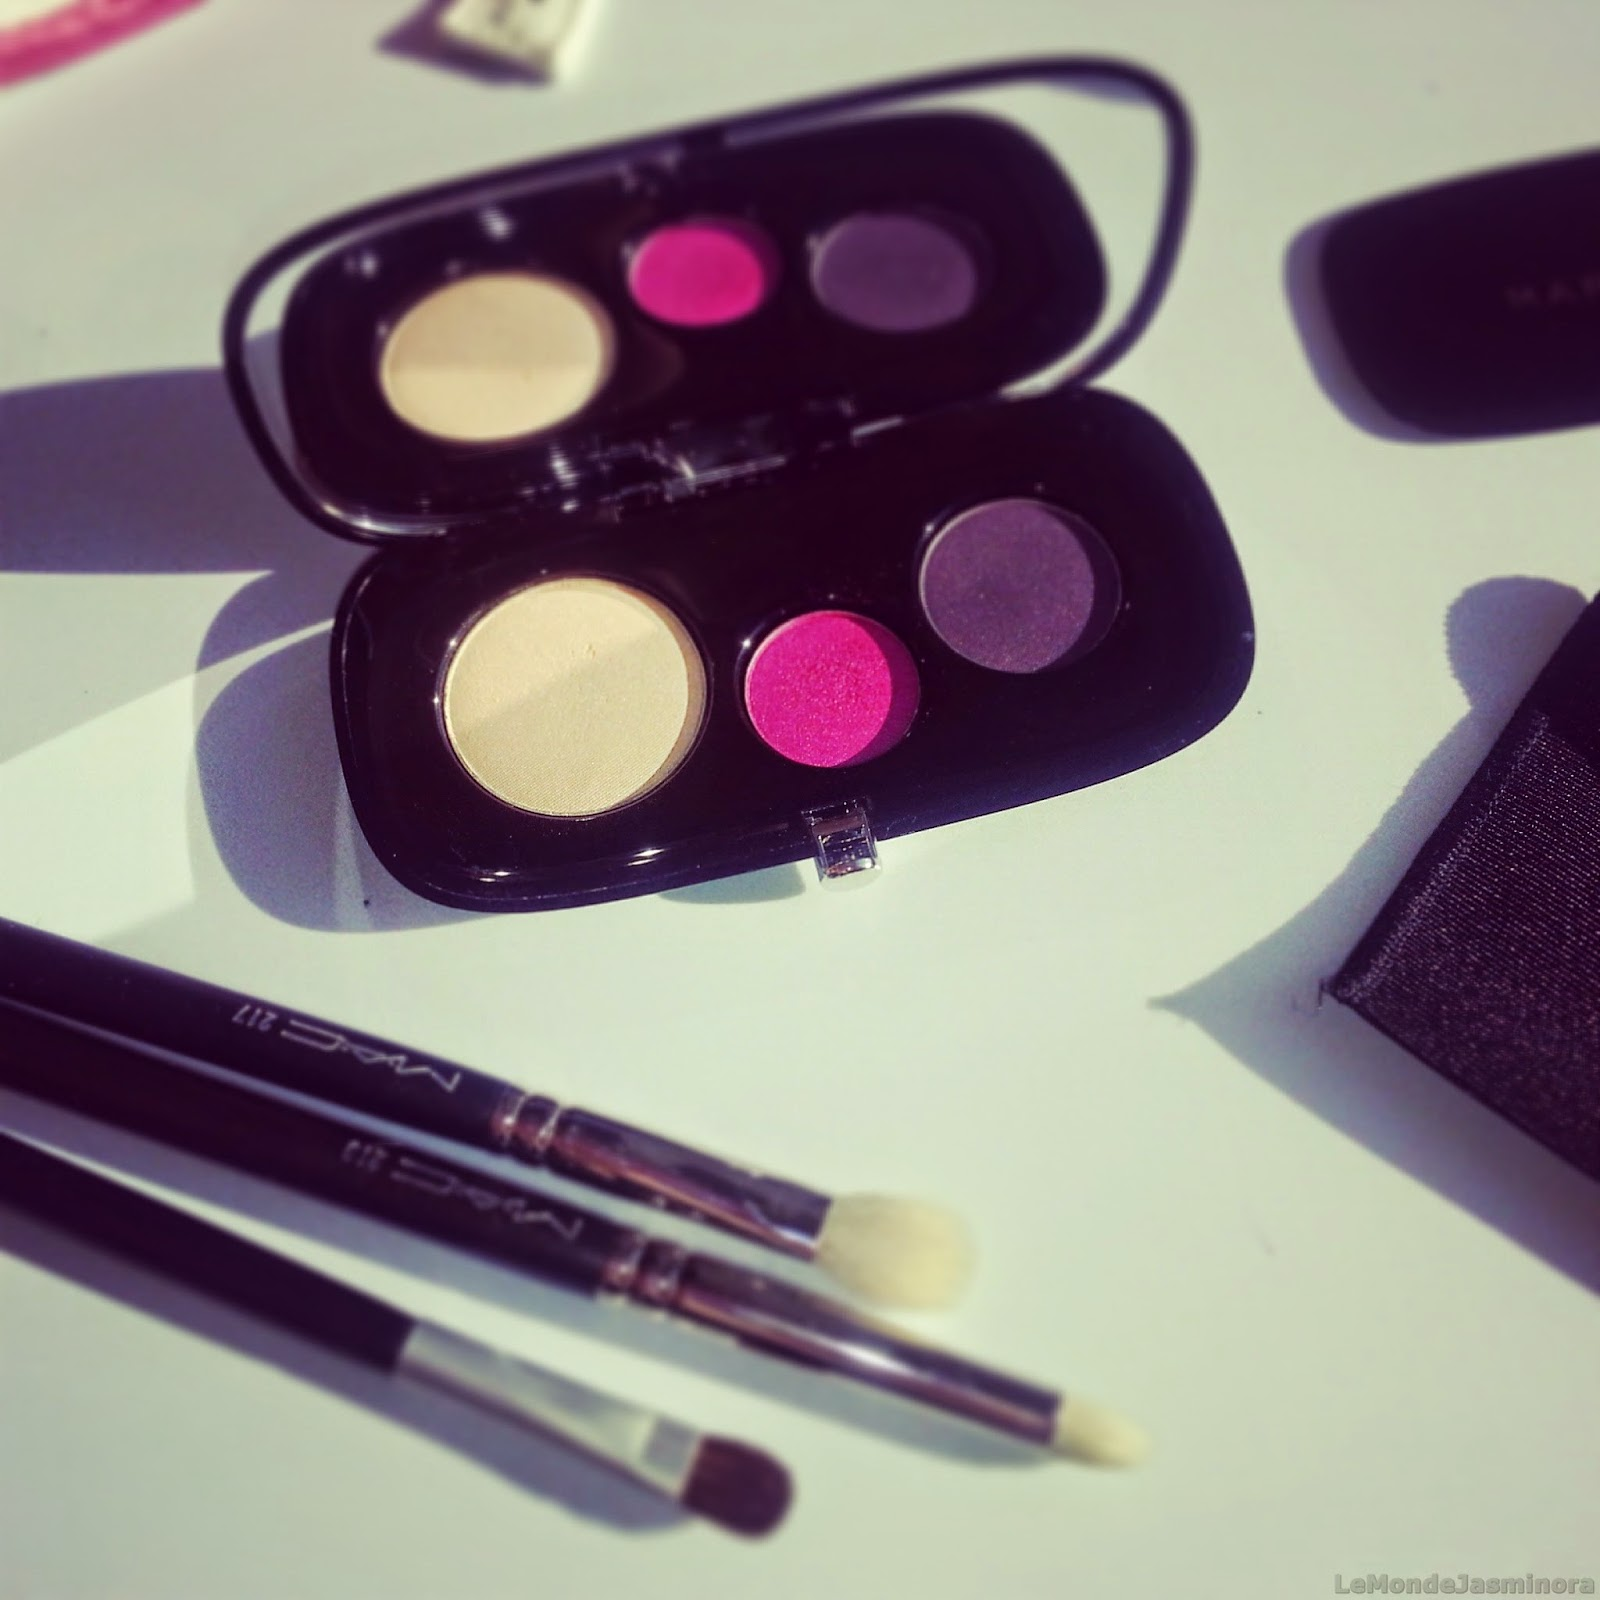 Marc Jacobs :The Rebel palette